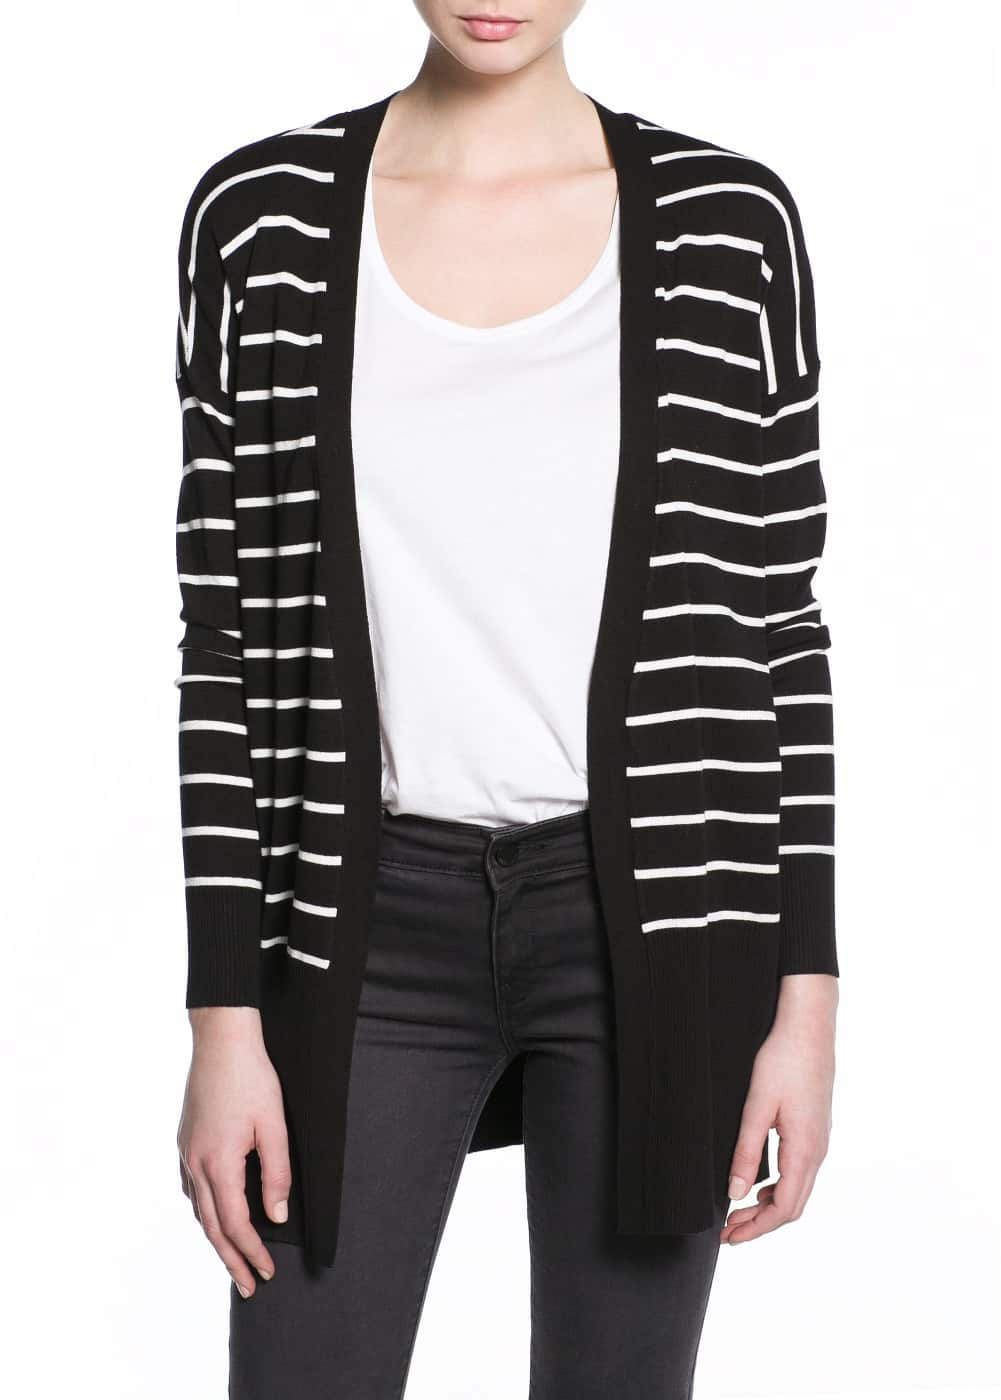 Monochrome striped cardigan